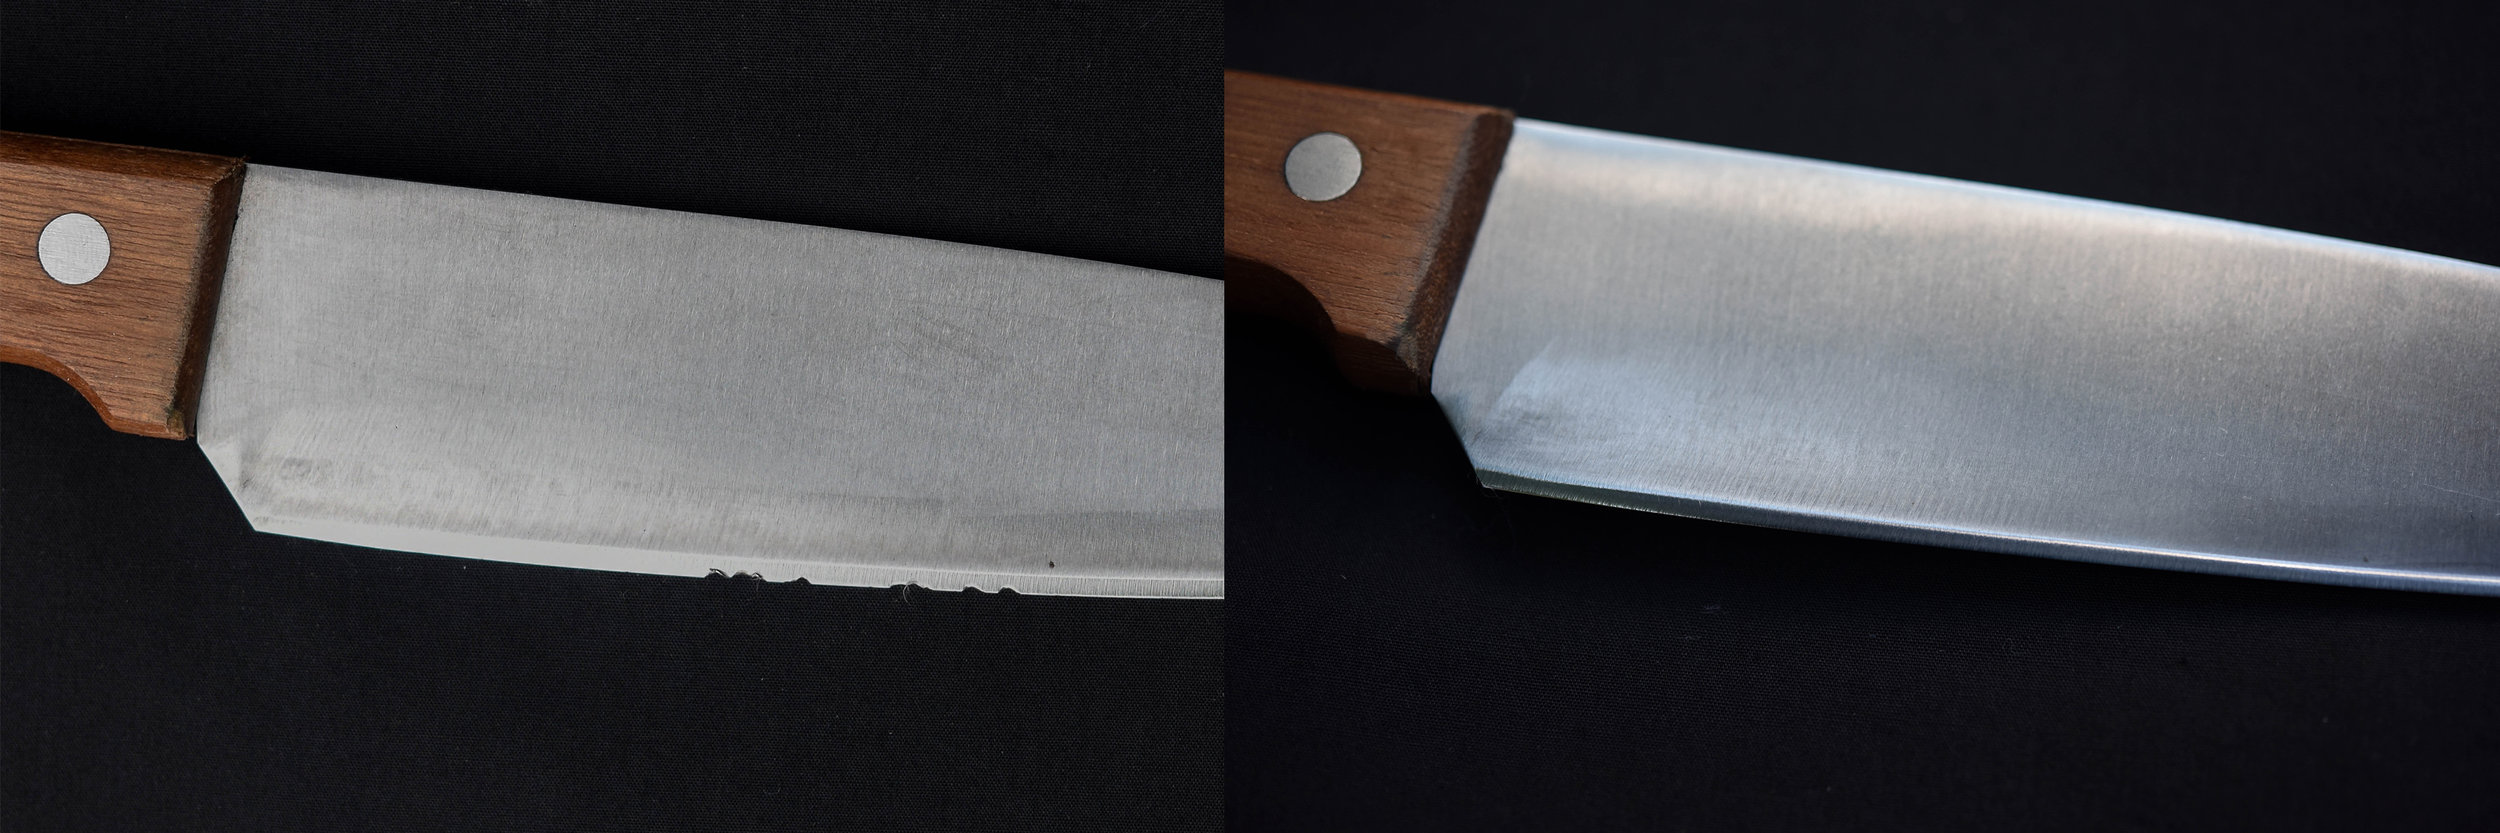 Before and after. The knife on the left is badly chipped on the cutting edge. On the right, it has been repaired.